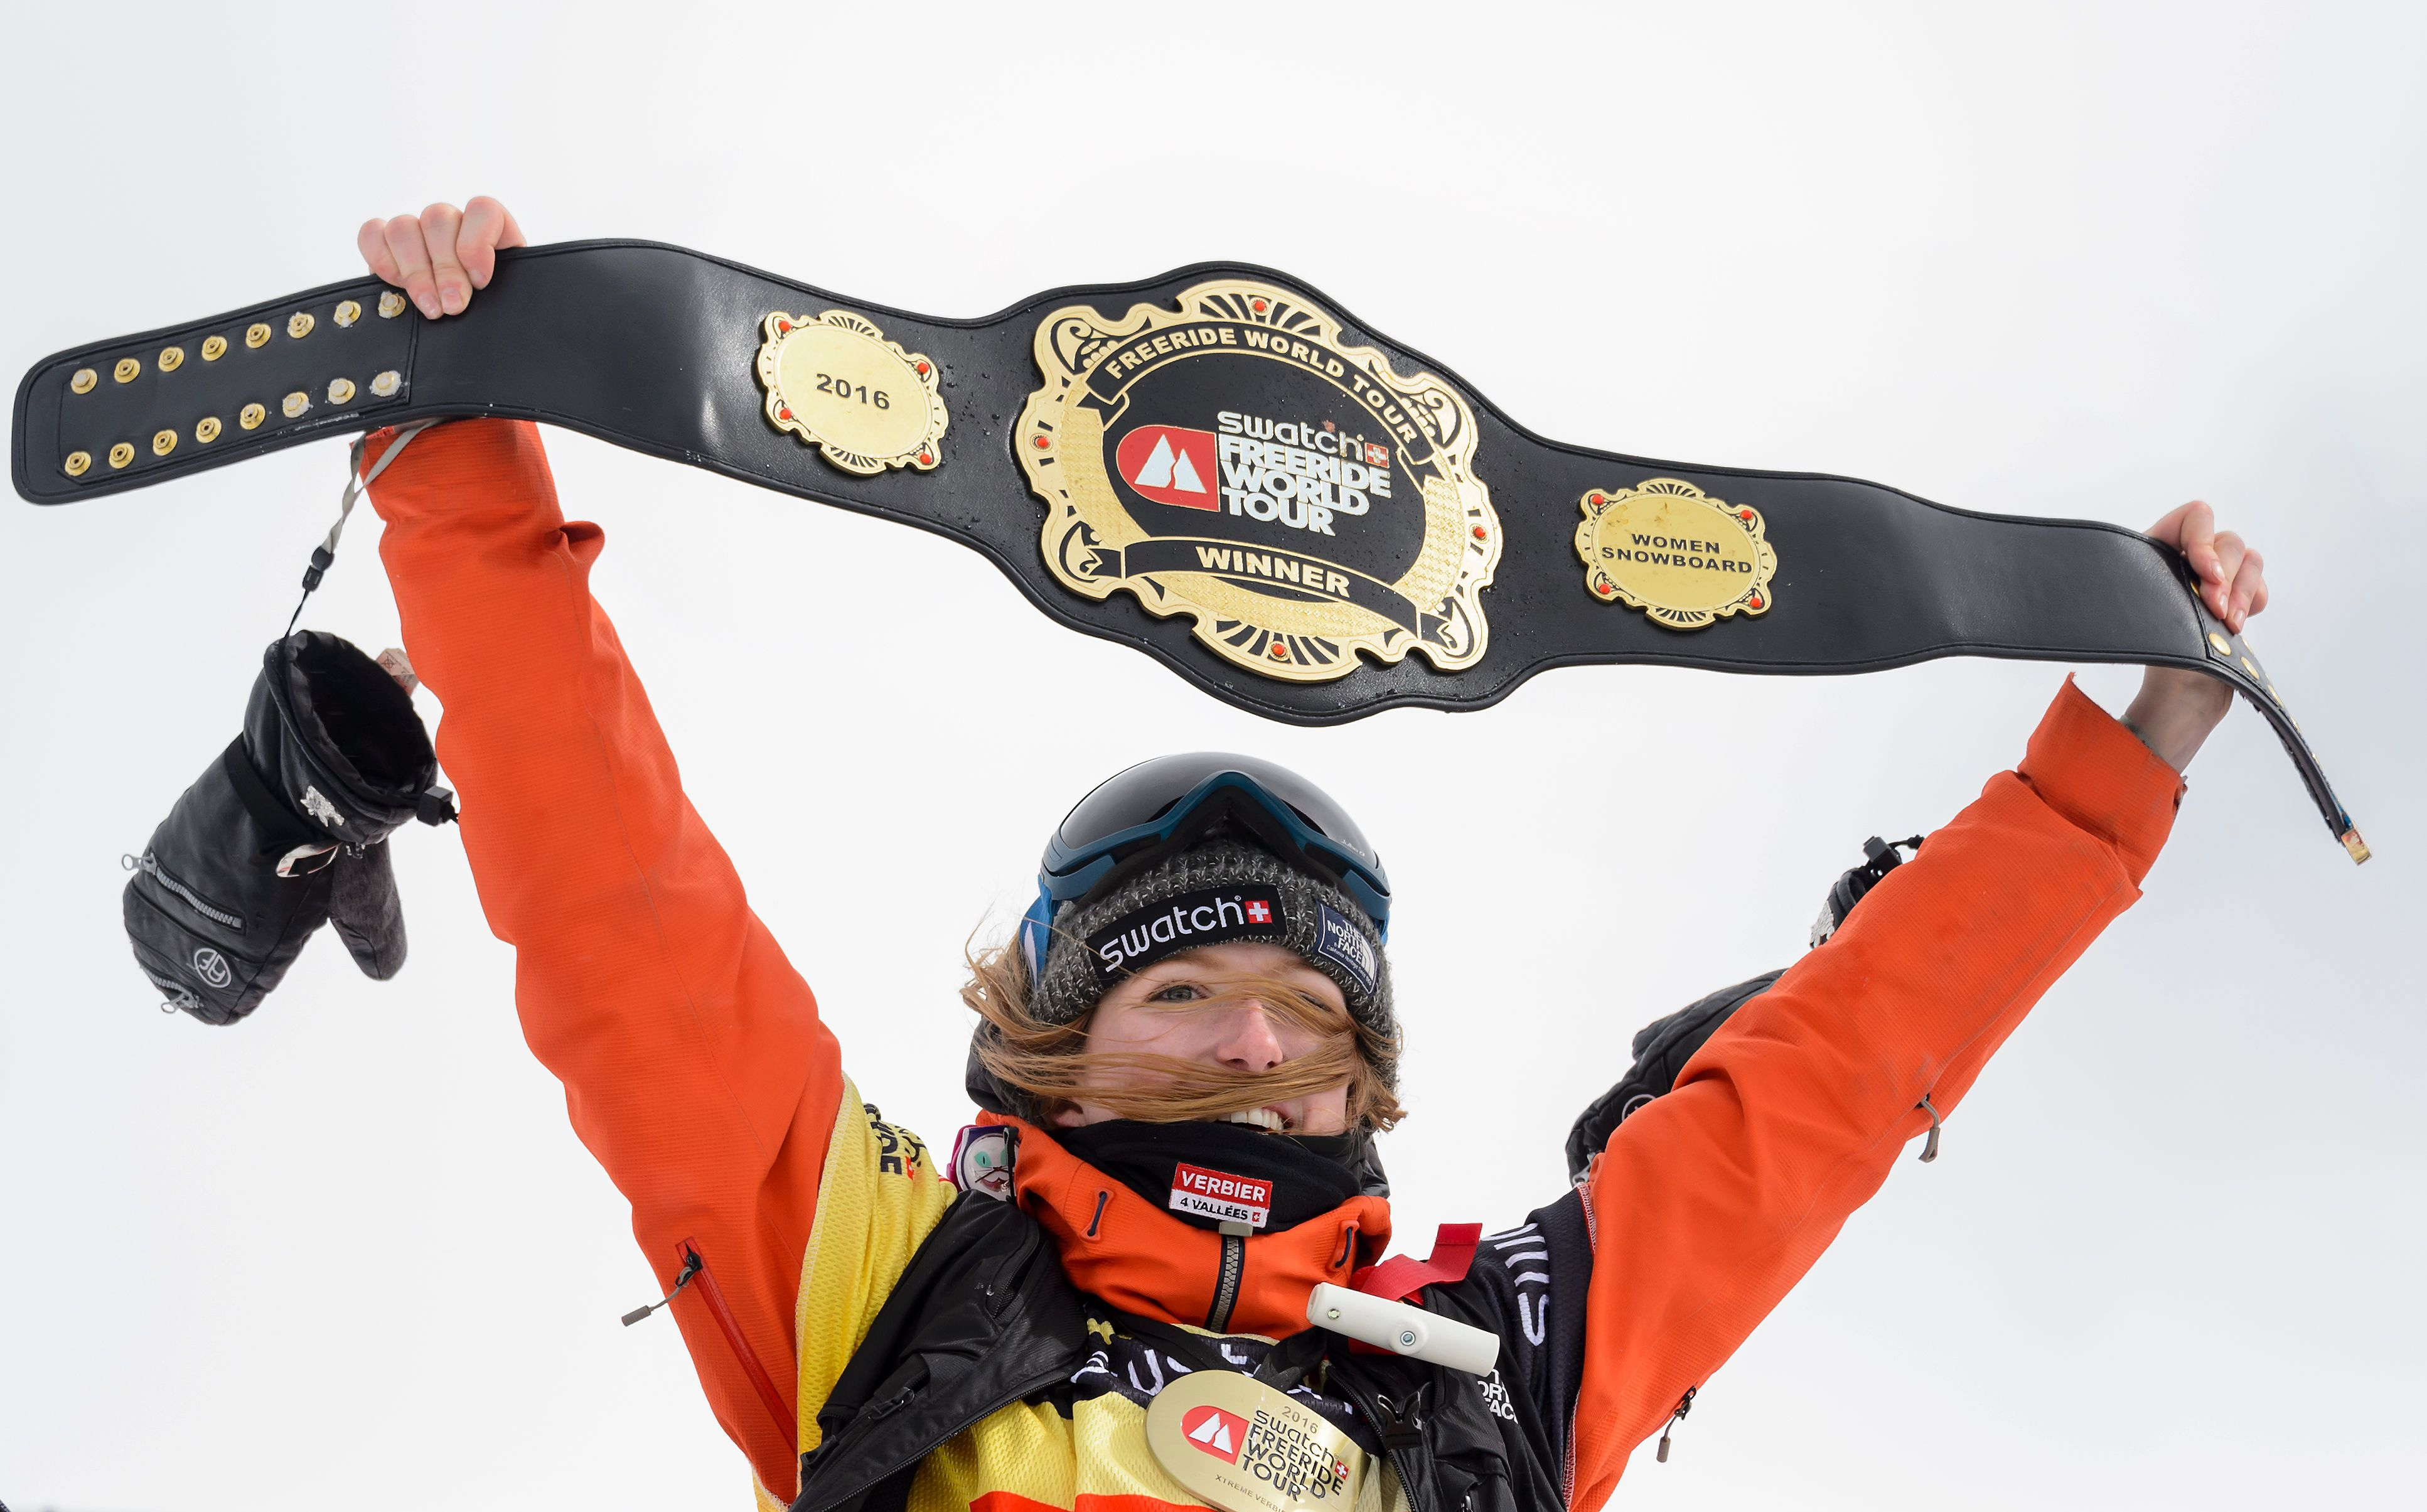 World champion Switzerland's Estelle Balet waves with the overall belt after she won the women's snowboard event at the Bec des Rosses during the Verbier Xtreme Freeride World Tour final on April 2, 2016 above the Swiss Alps resort of Verbier.